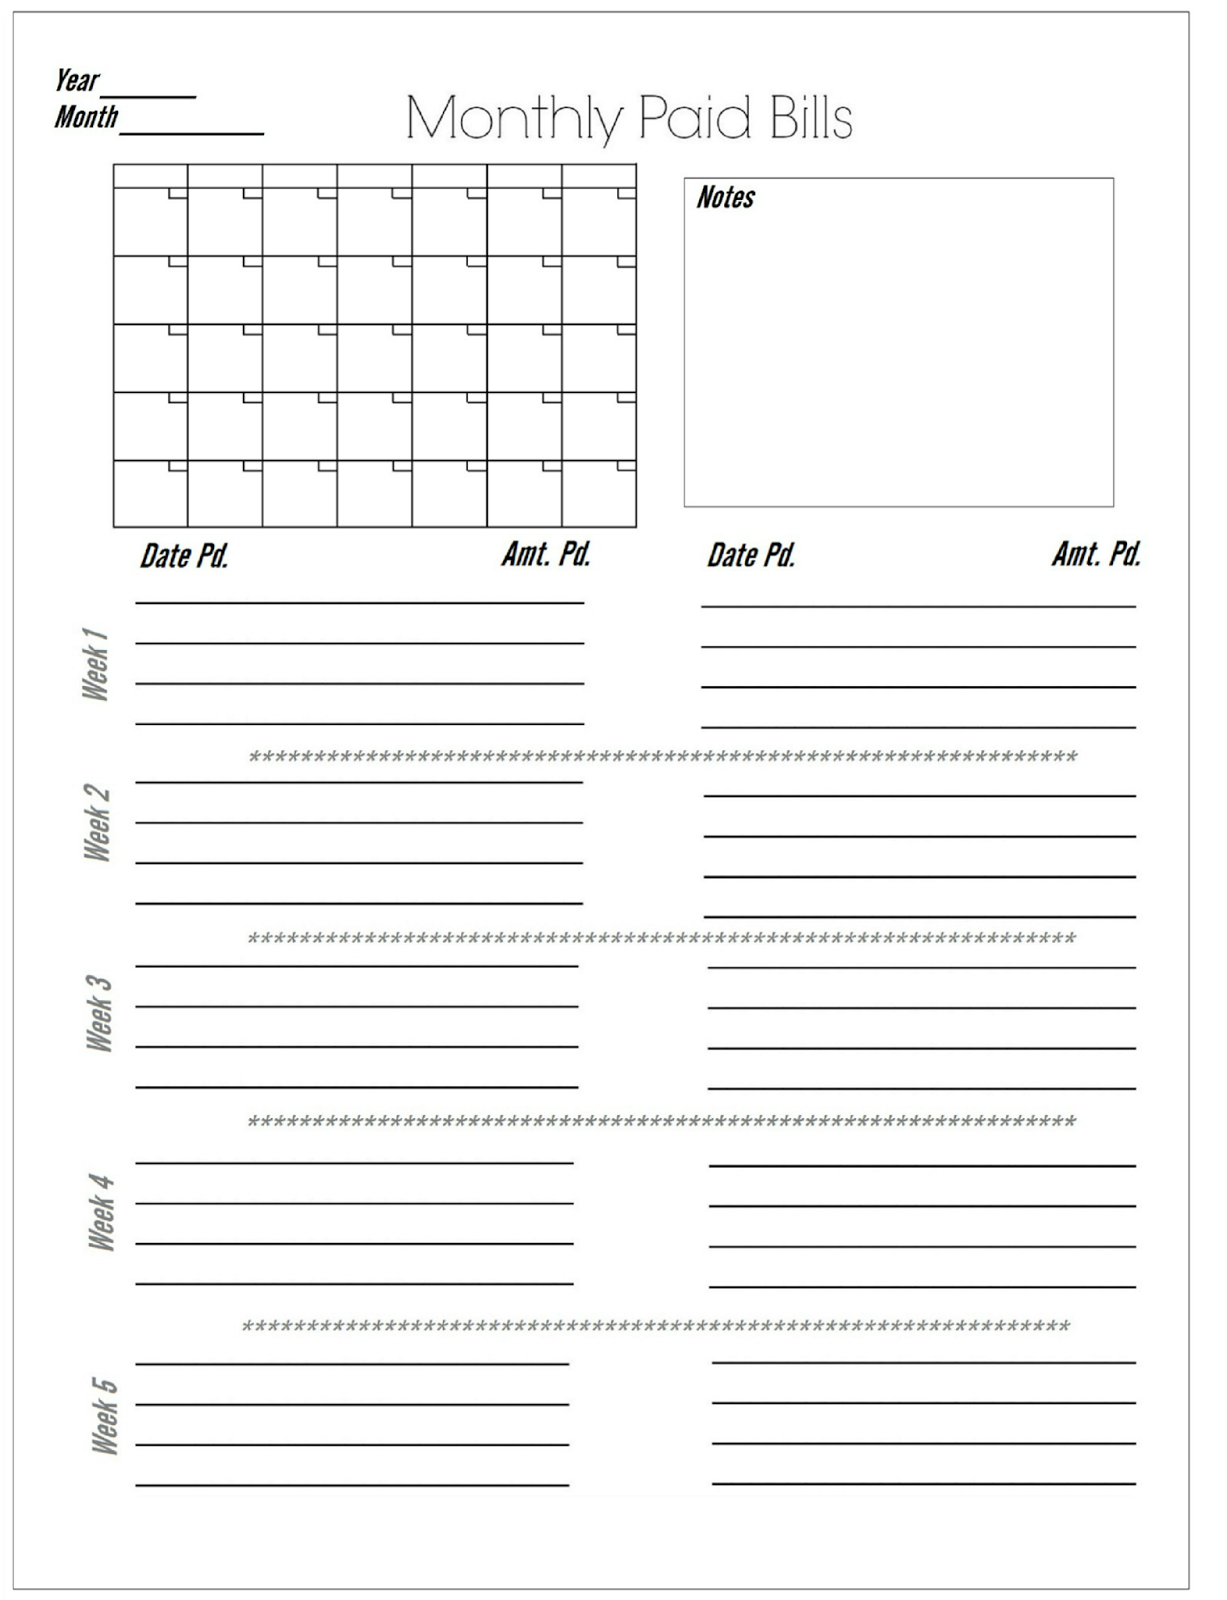 glenda's World : Worksheet to Keep Track of Paid Monthly Bills